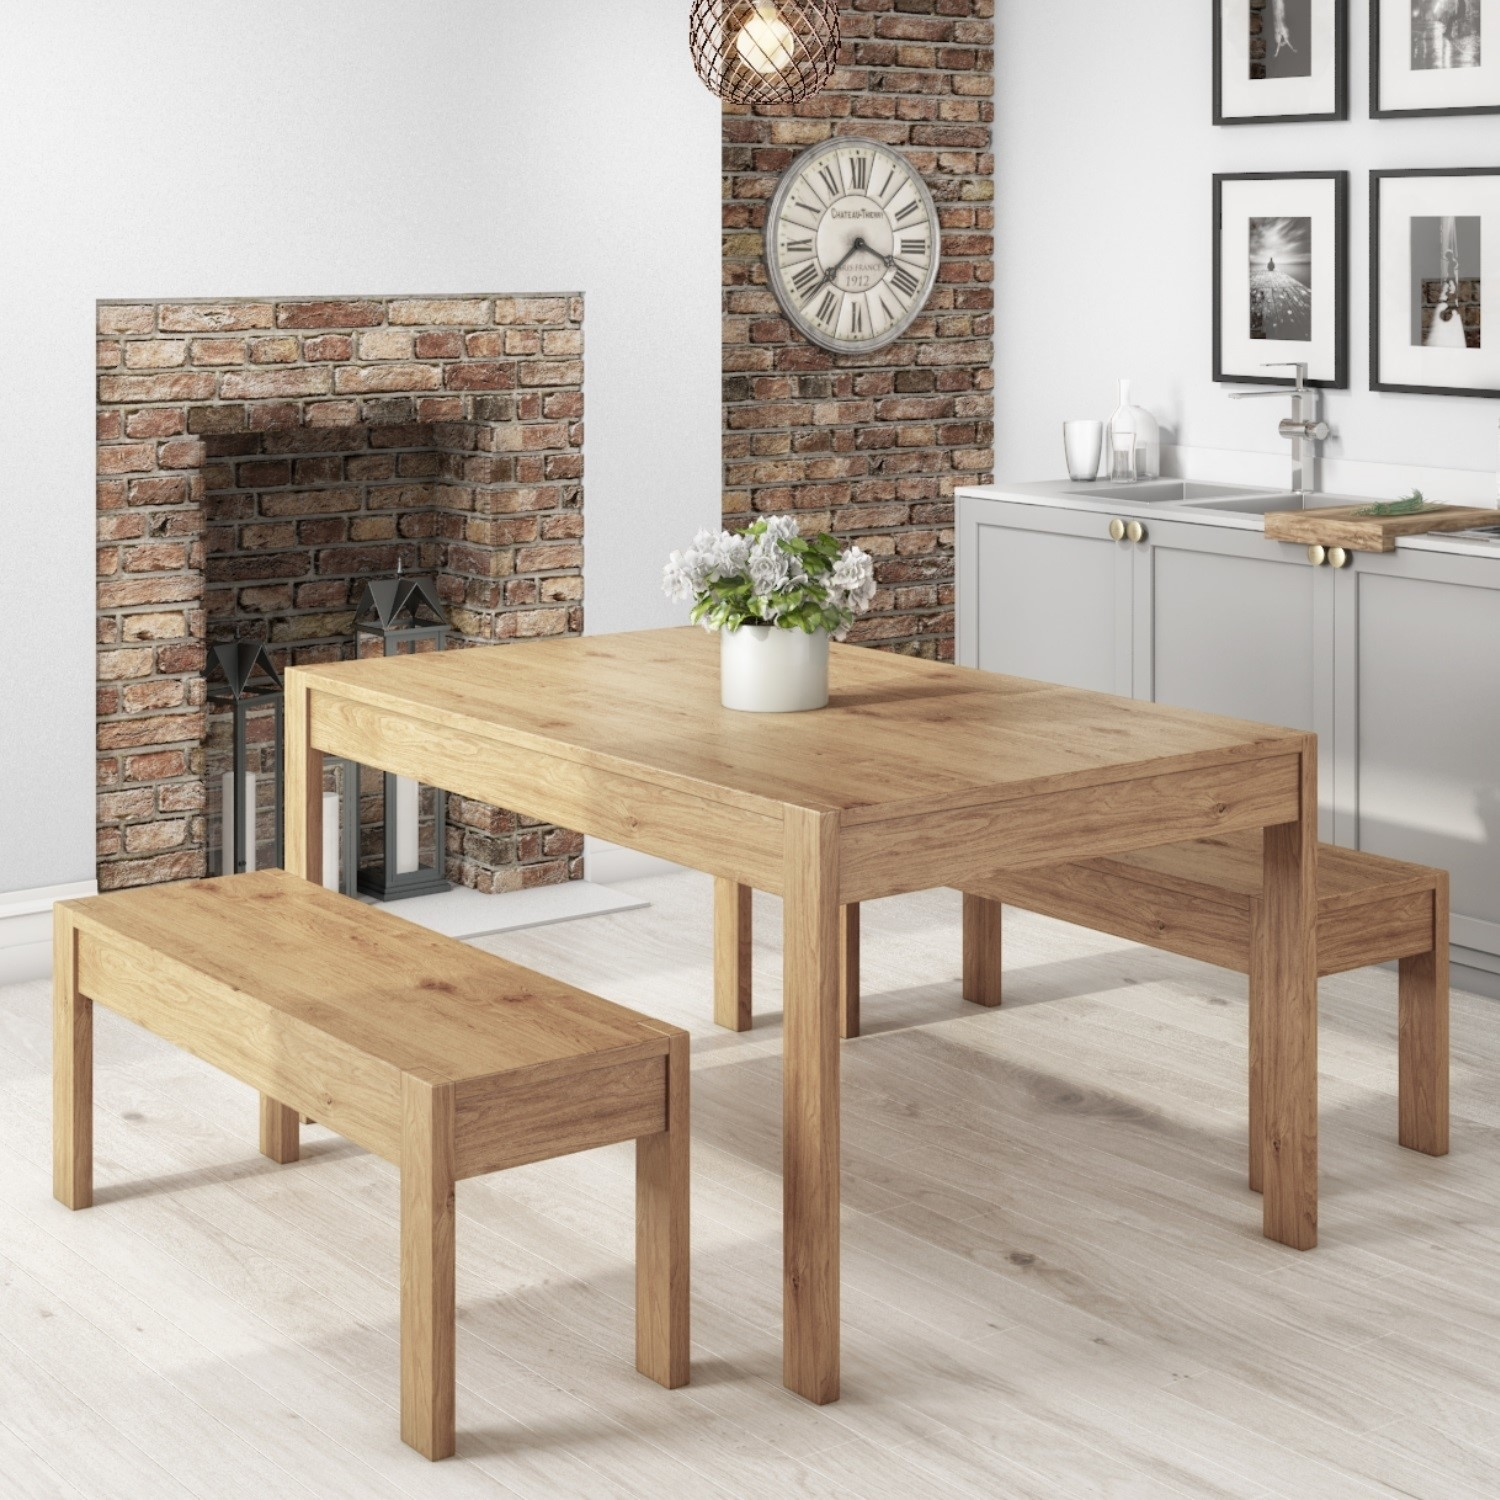 Solid Pine Rectangle Dining Table with 9 Dining Benches   Emerson